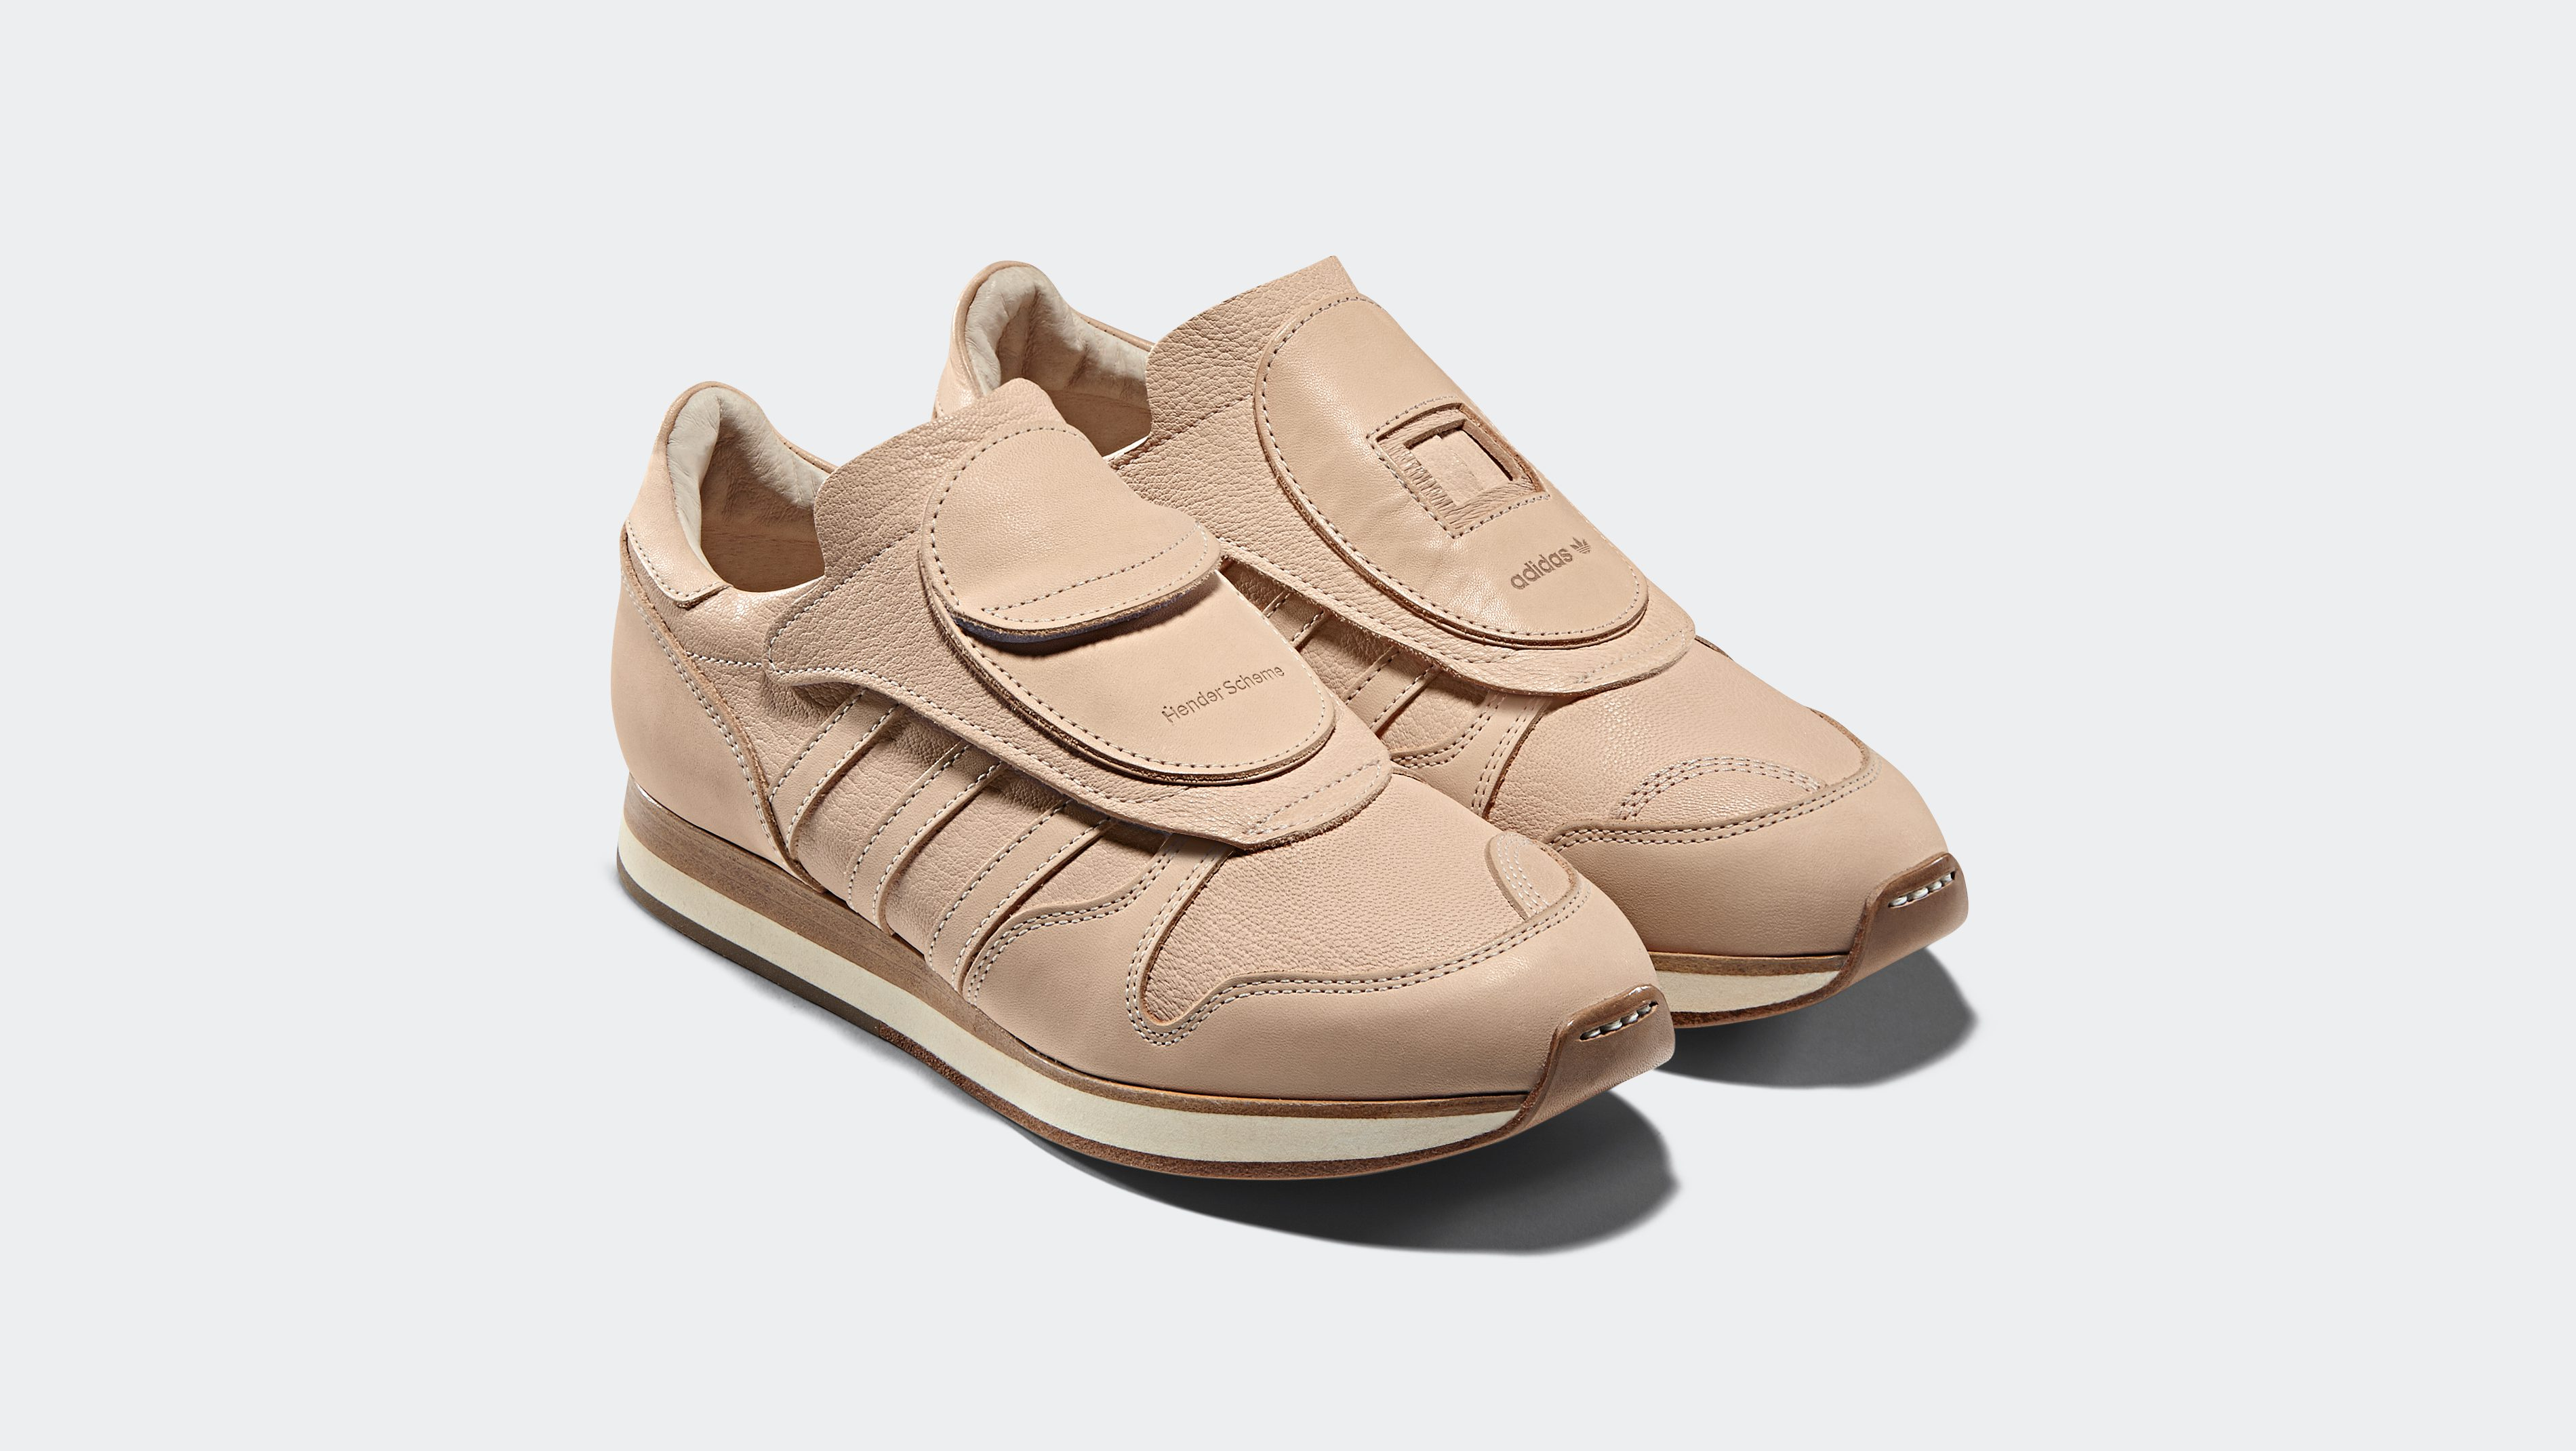 b89825c058b Adidas is collaborating with a Japanese label to create artisanal  knock-offs of its own shoes